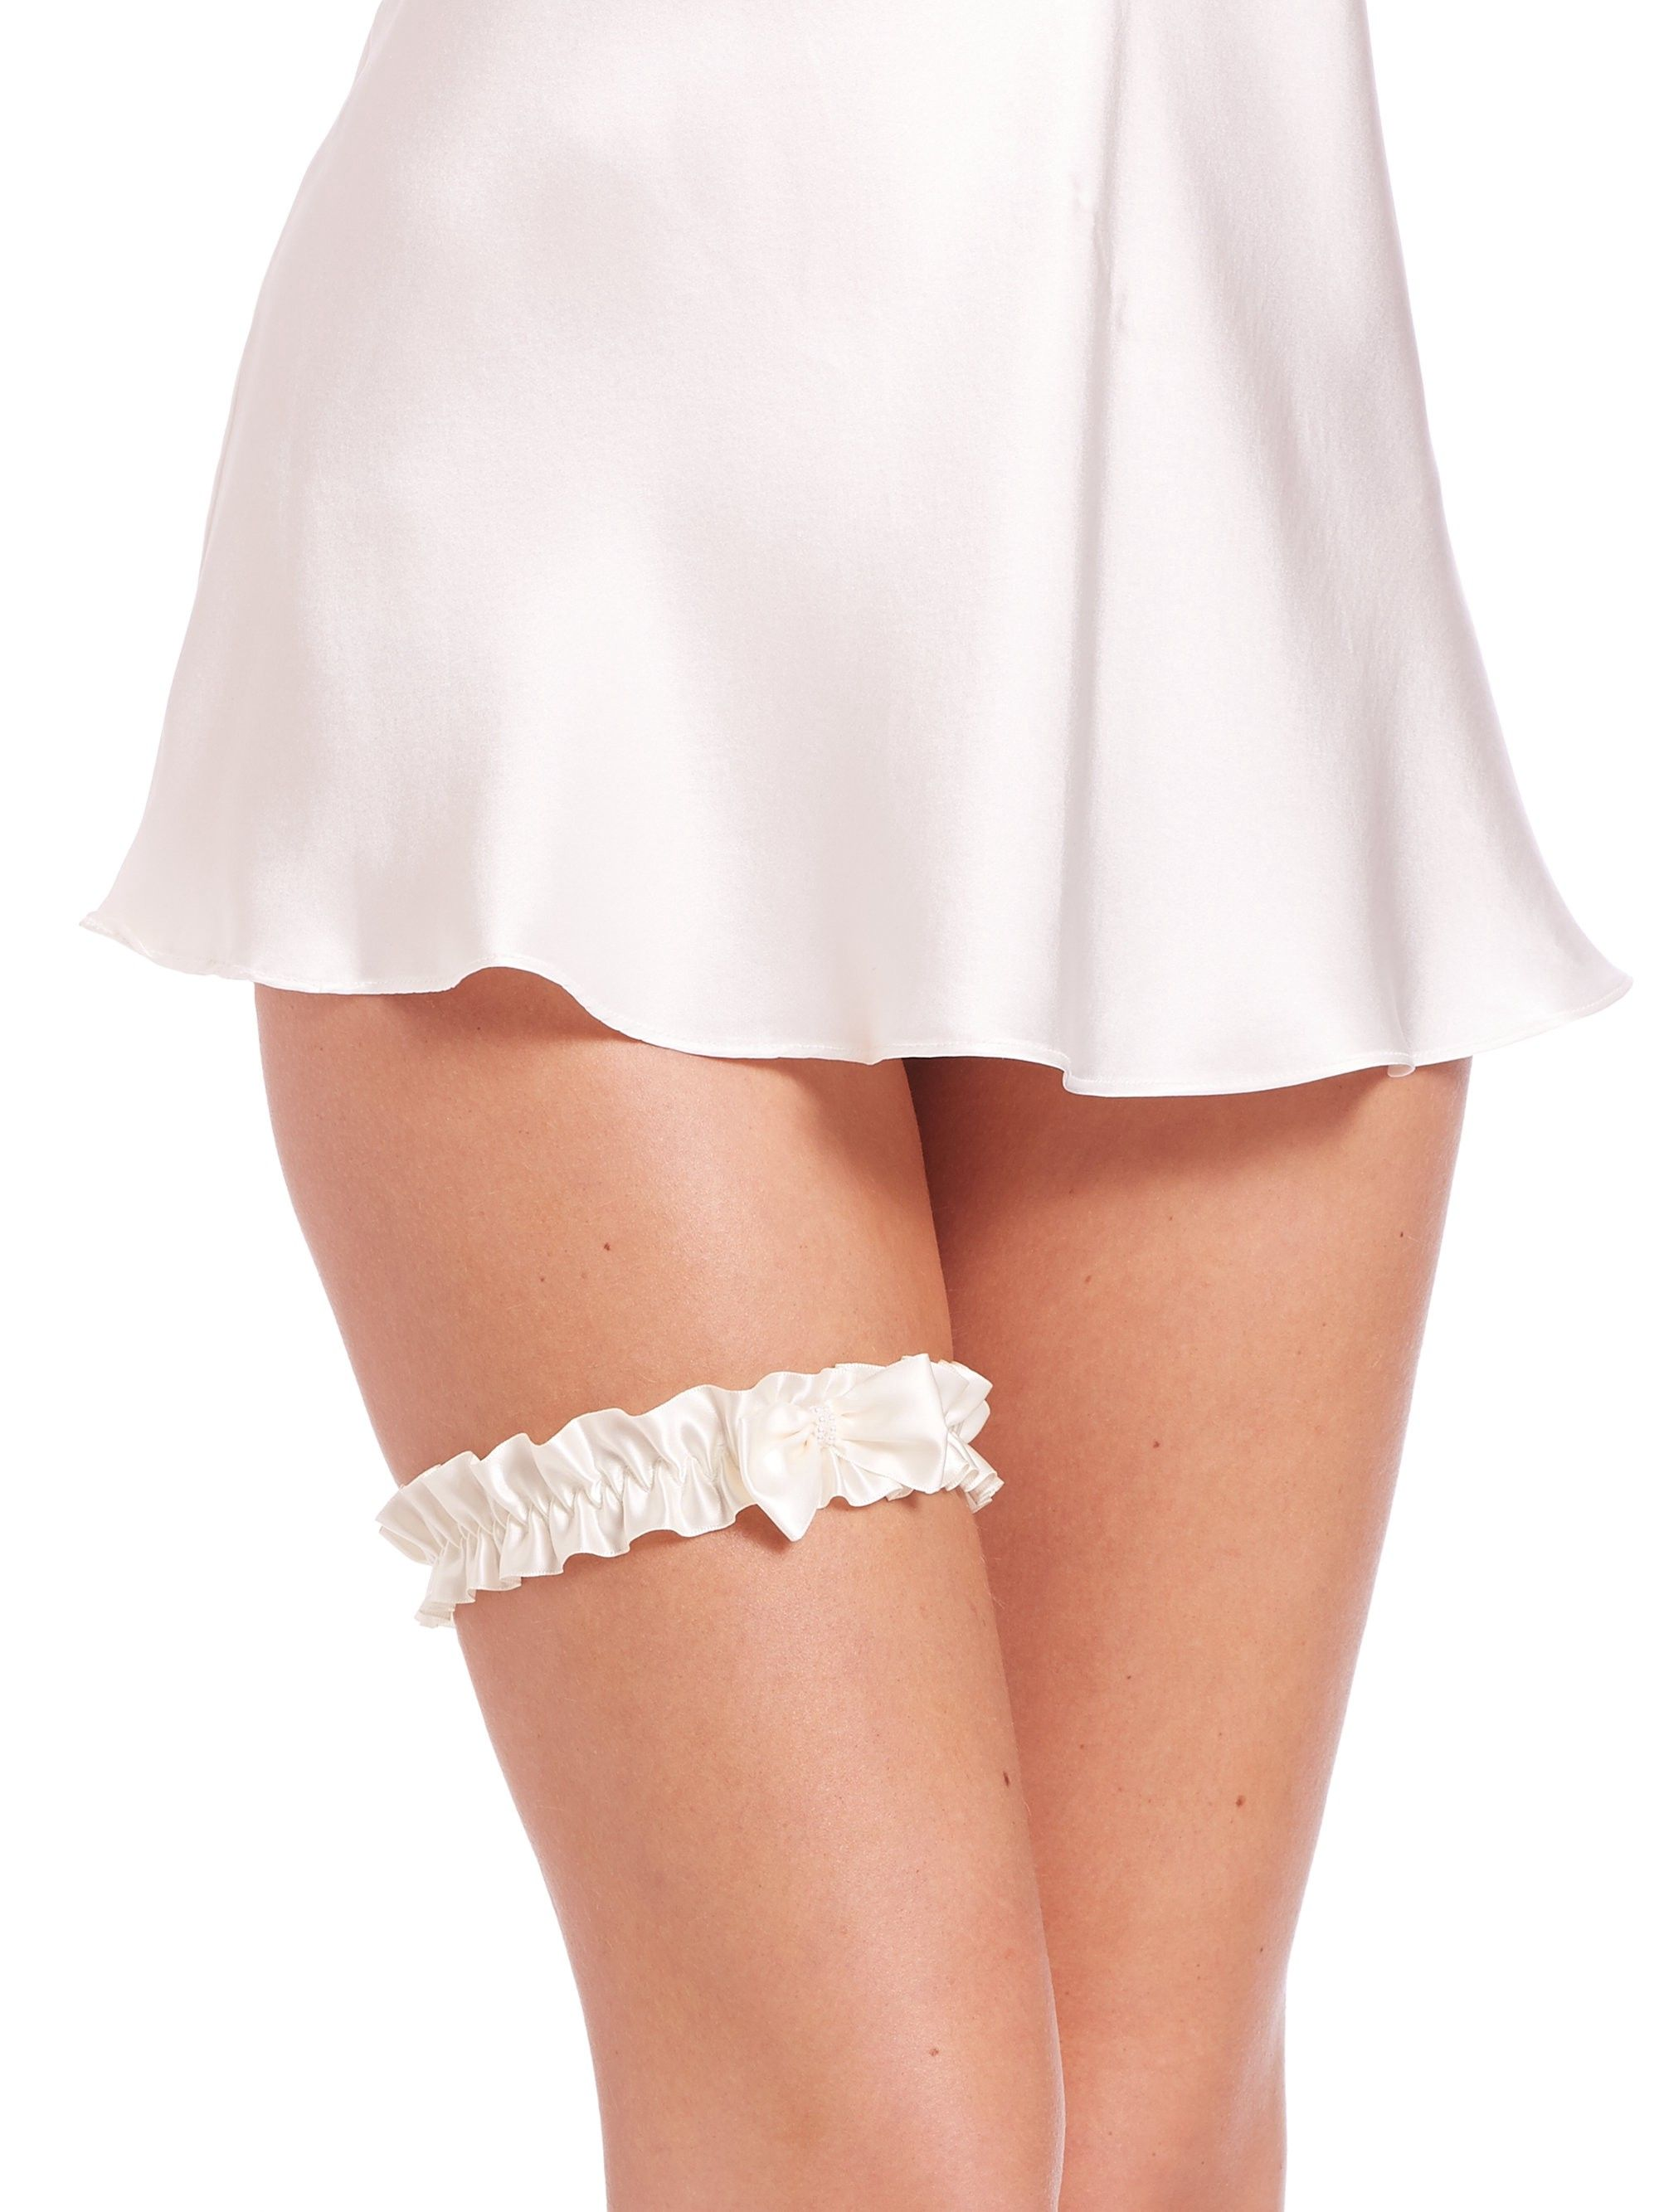 907f612a030 Hanky Panky Embellished Bow Garter - Light Ivory One Size